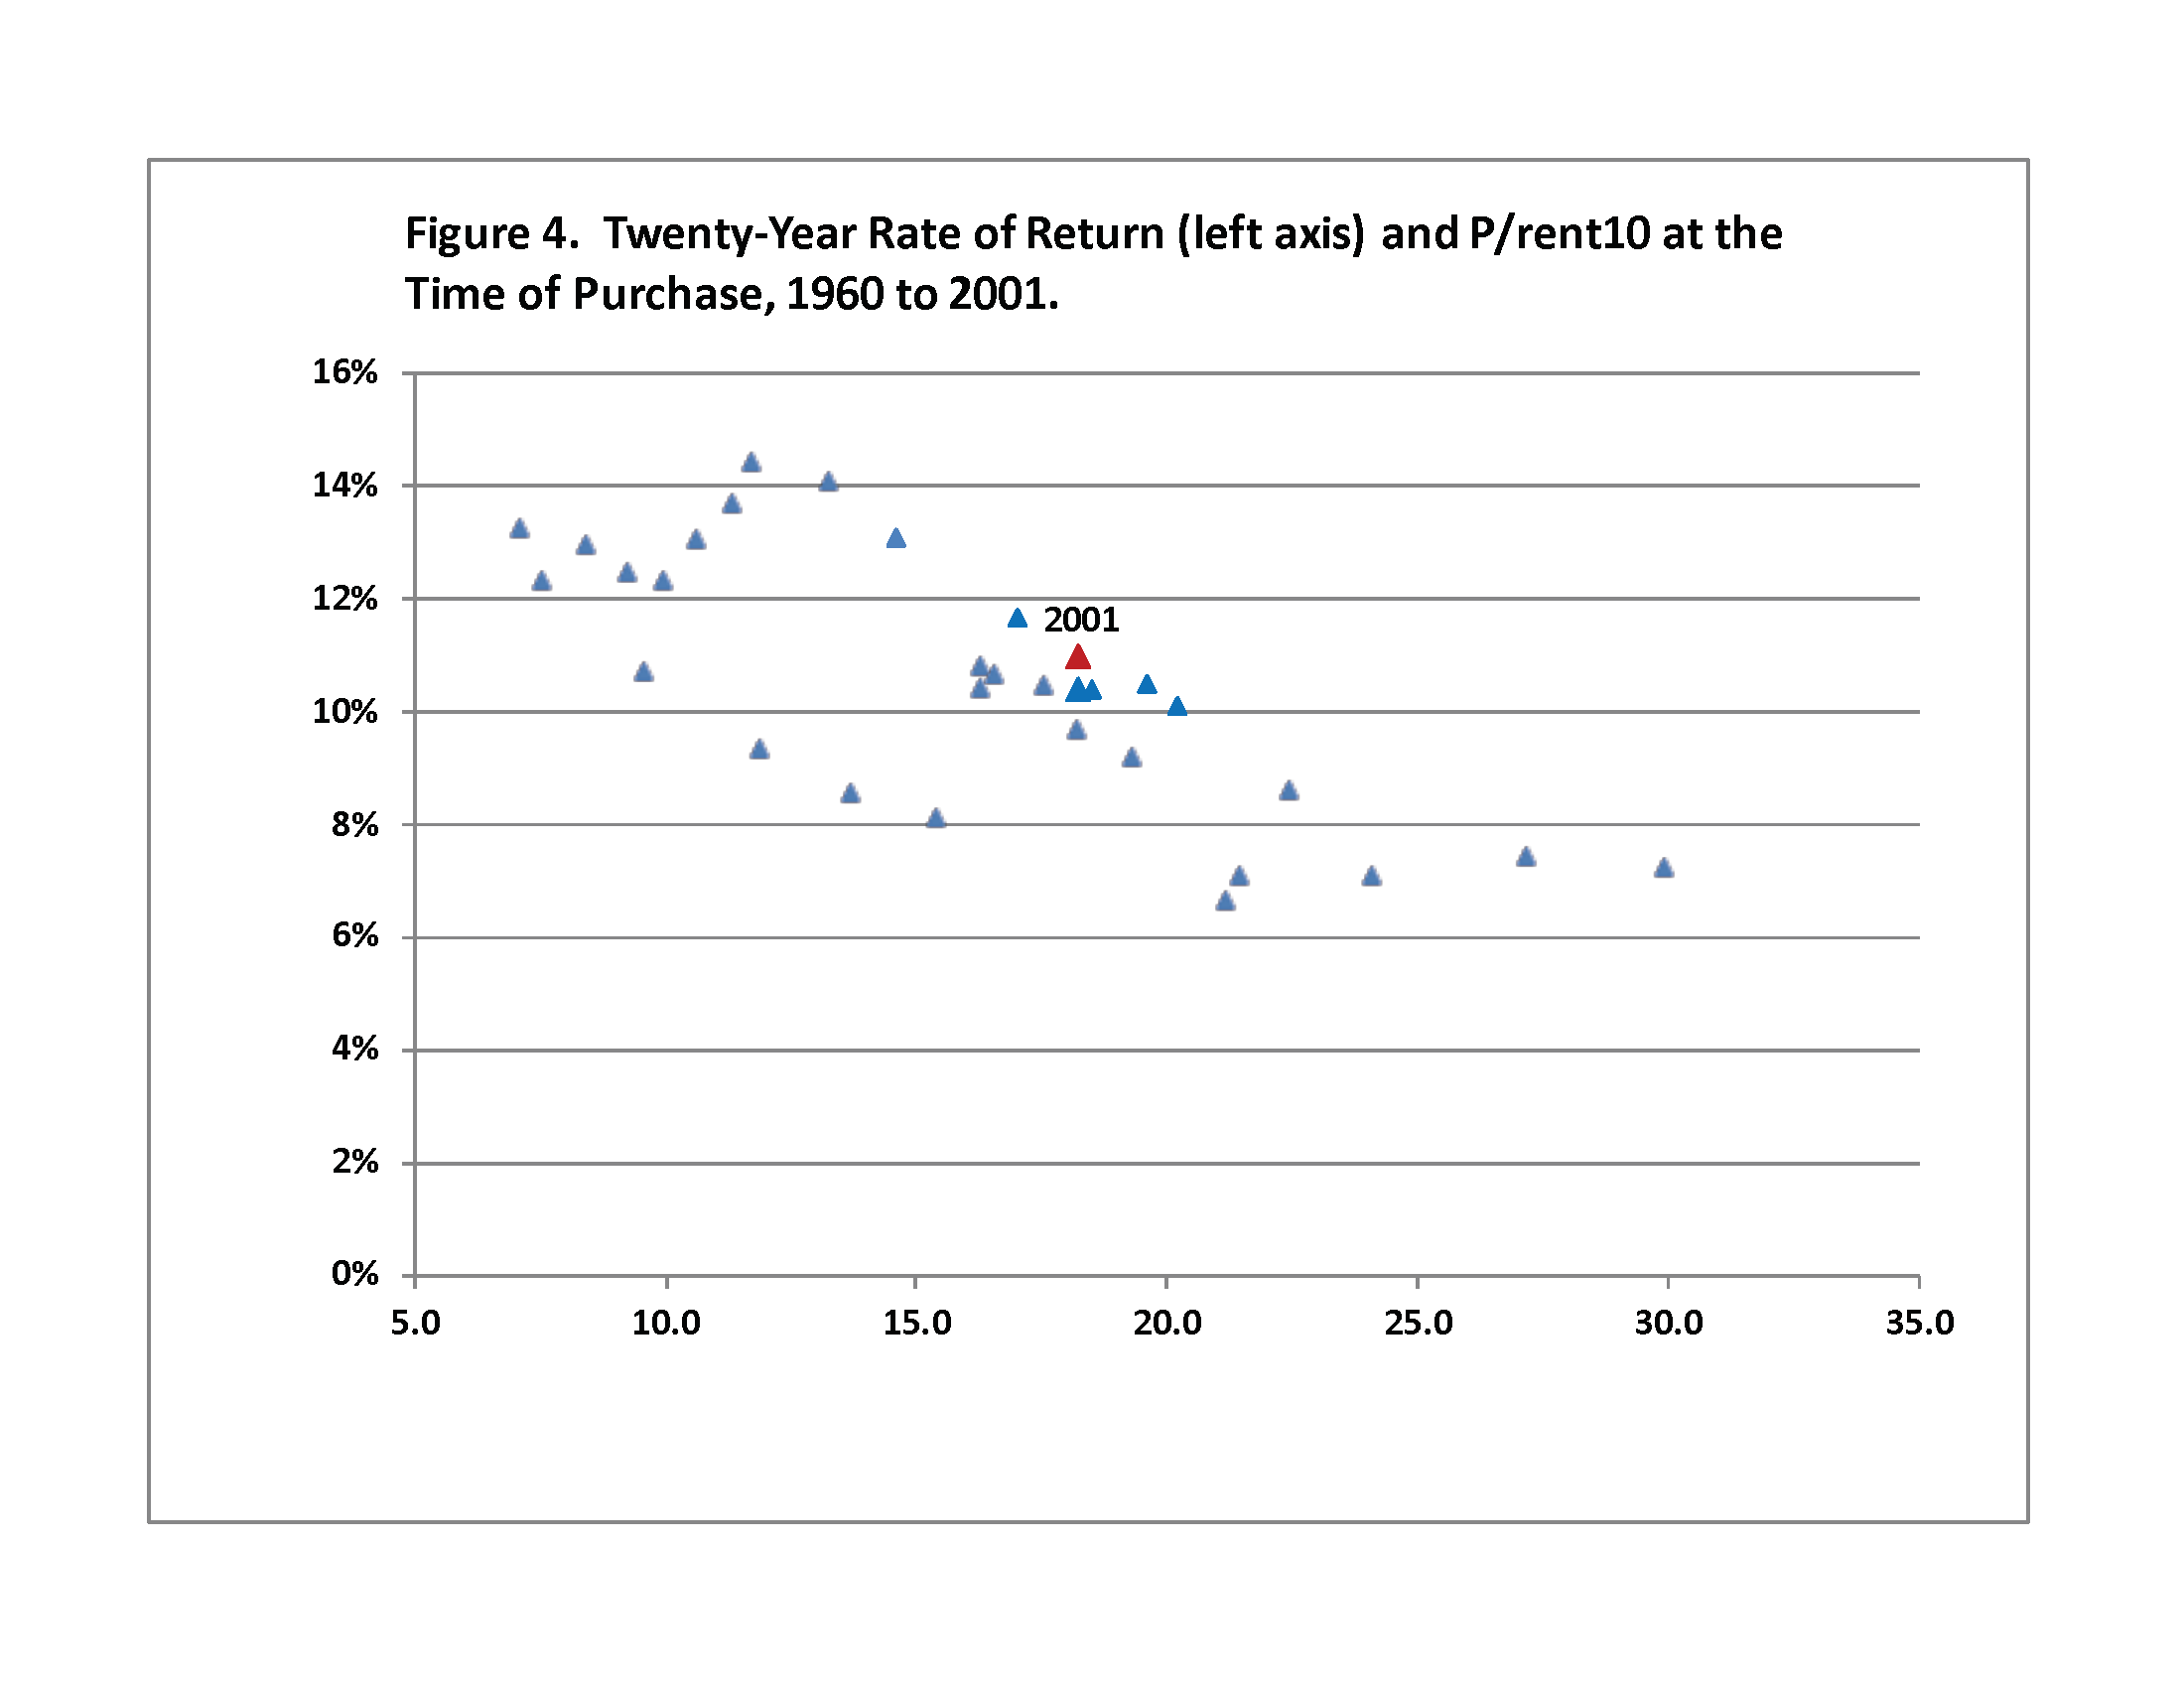 Figure 4. Twenty-Year Rate of Return (left axis) and P/rent10 at the Time of Purchase, 1960 to 2001.